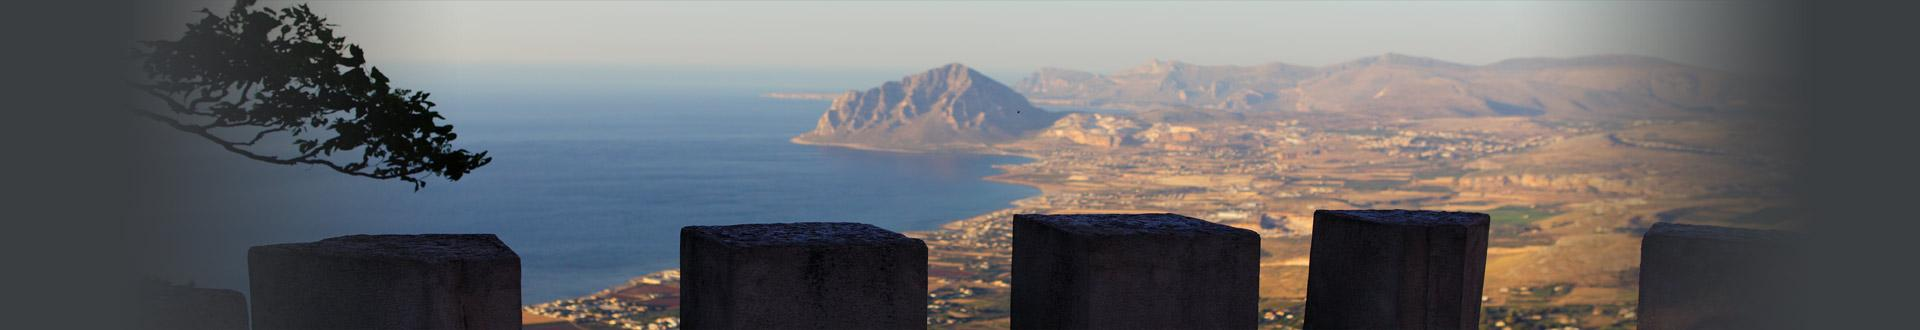 Villas in Sicily and Holiday homes near Erice